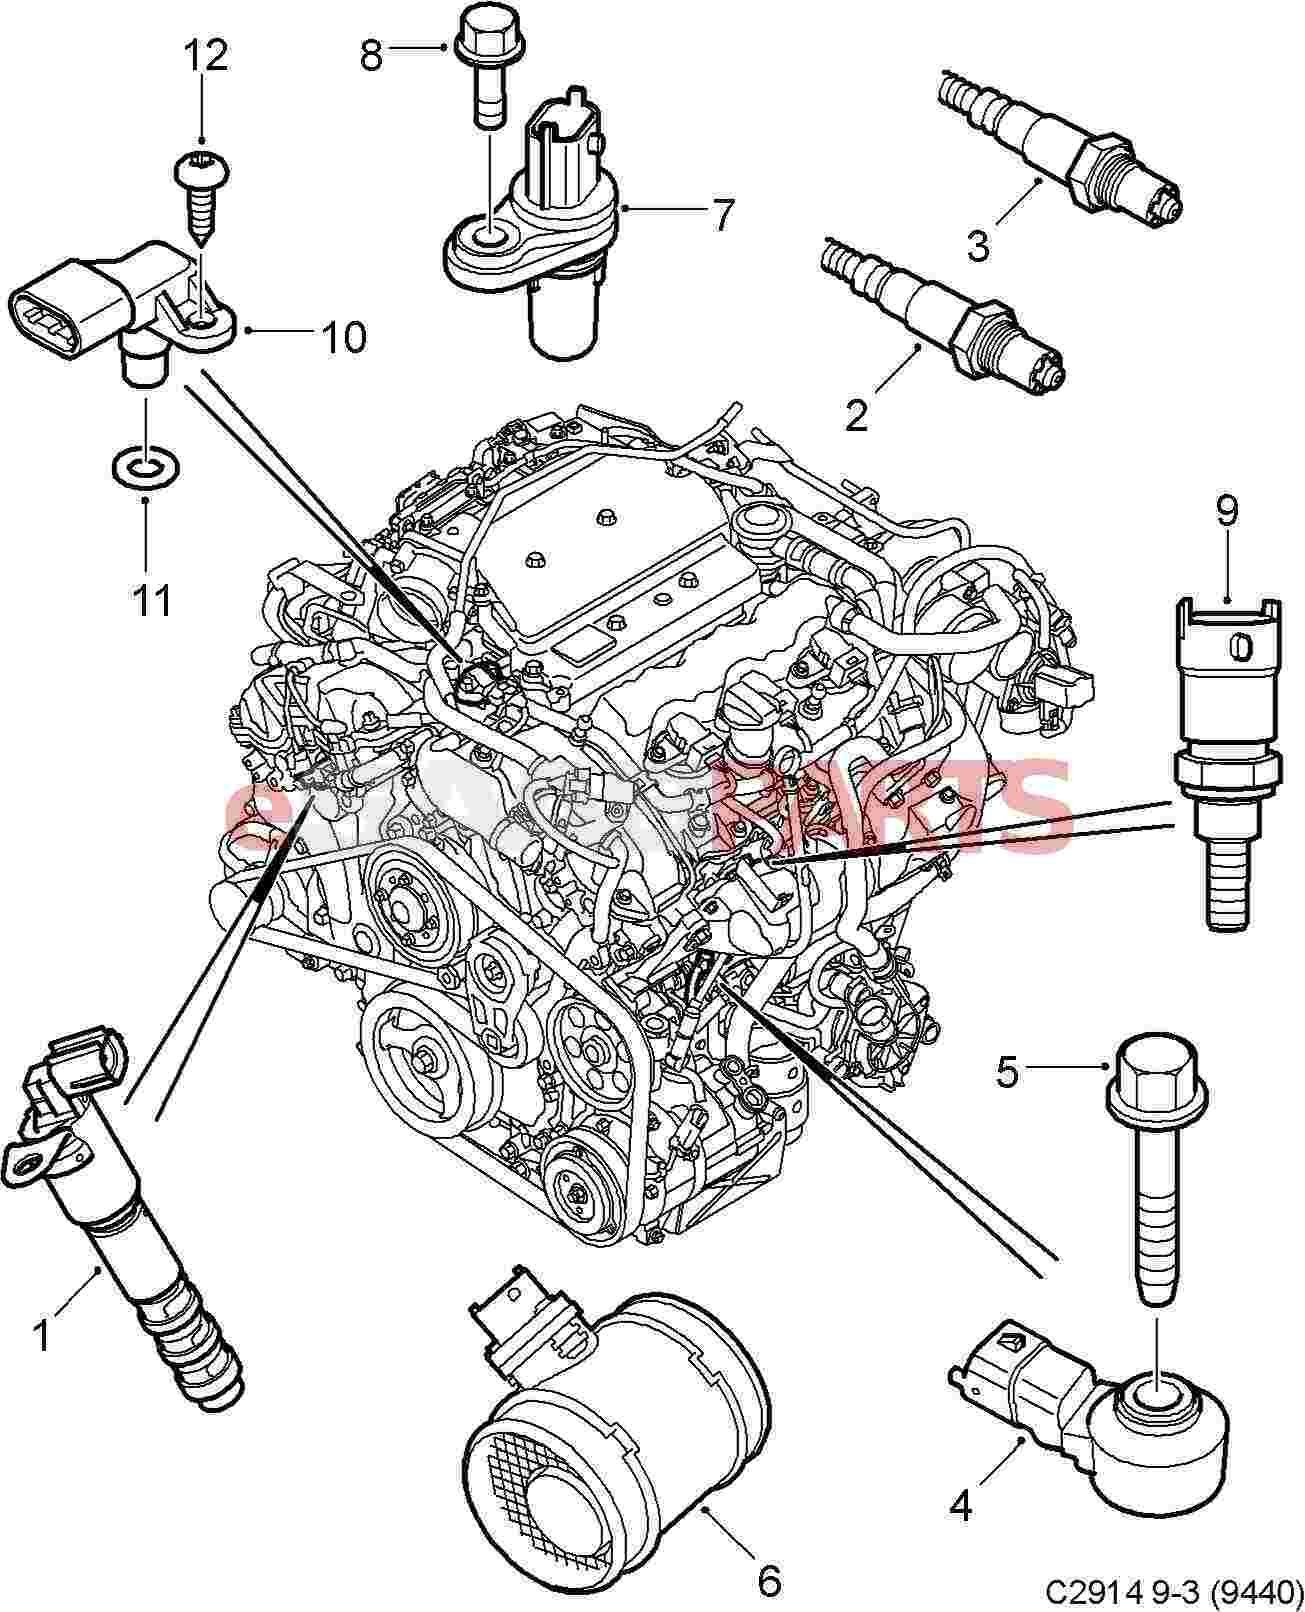 Gmc Savana Fuse Box furthermore Lev100 115 120 further Serpentine Belt Diagram 2005 Chrysler Pacifica V6 35 Liter Engine 02201 as well Husky 5000 Watt Generator Wiring Diagram furthermore Buick Lesabre 1998 Buick Lesabre No Air From Dash Vents. on subaru engine diagram